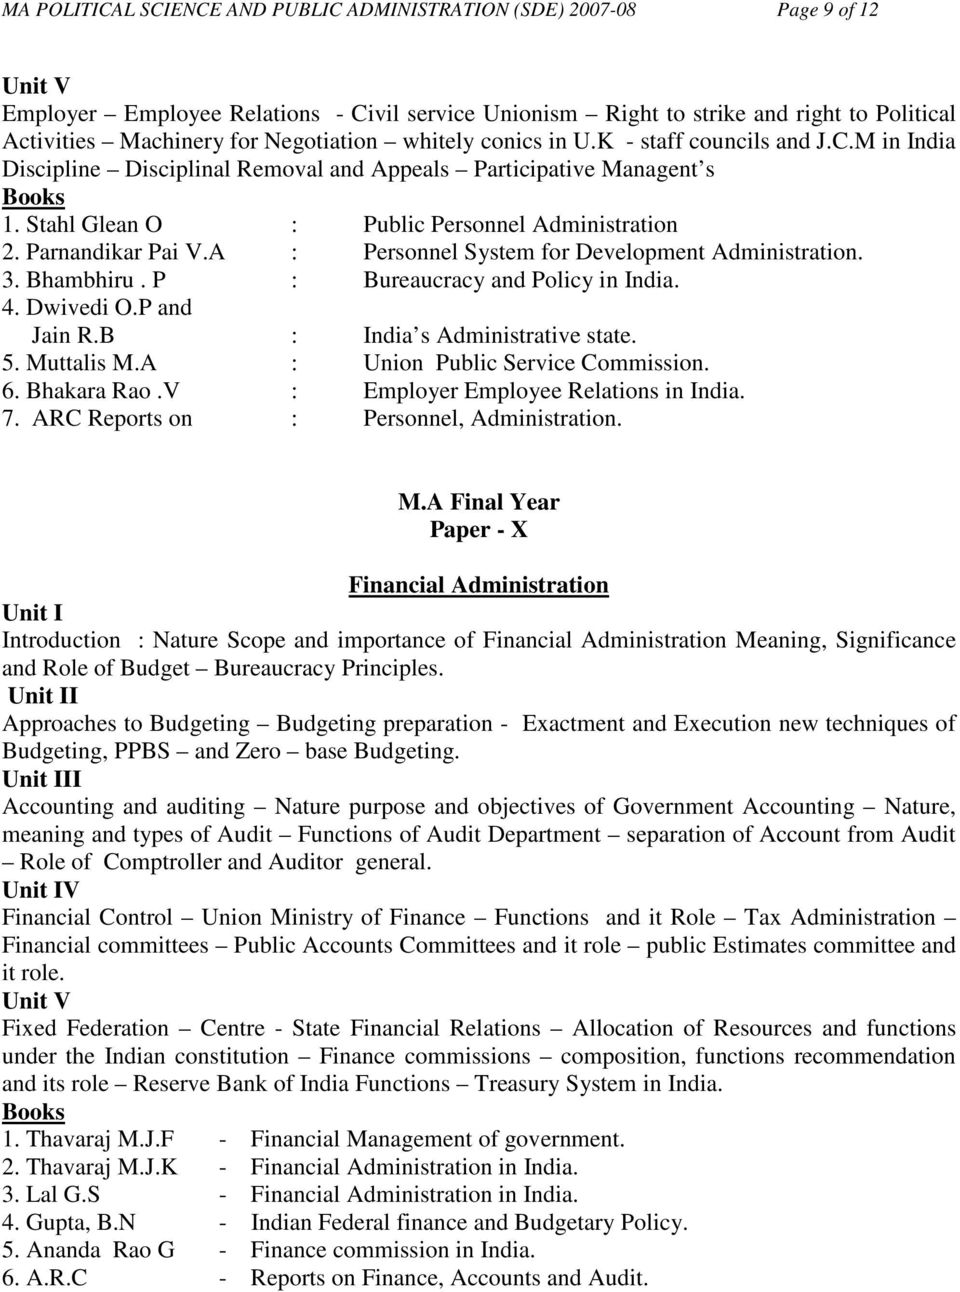 Parnandikar Pai V.A : Personnel System for Development Administration. 3. Bhambhiru. P : Bureaucracy and Policy in India. 4. Dwivedi O.P and Jain R.B : India s Administrative state. 5. Muttalis M.